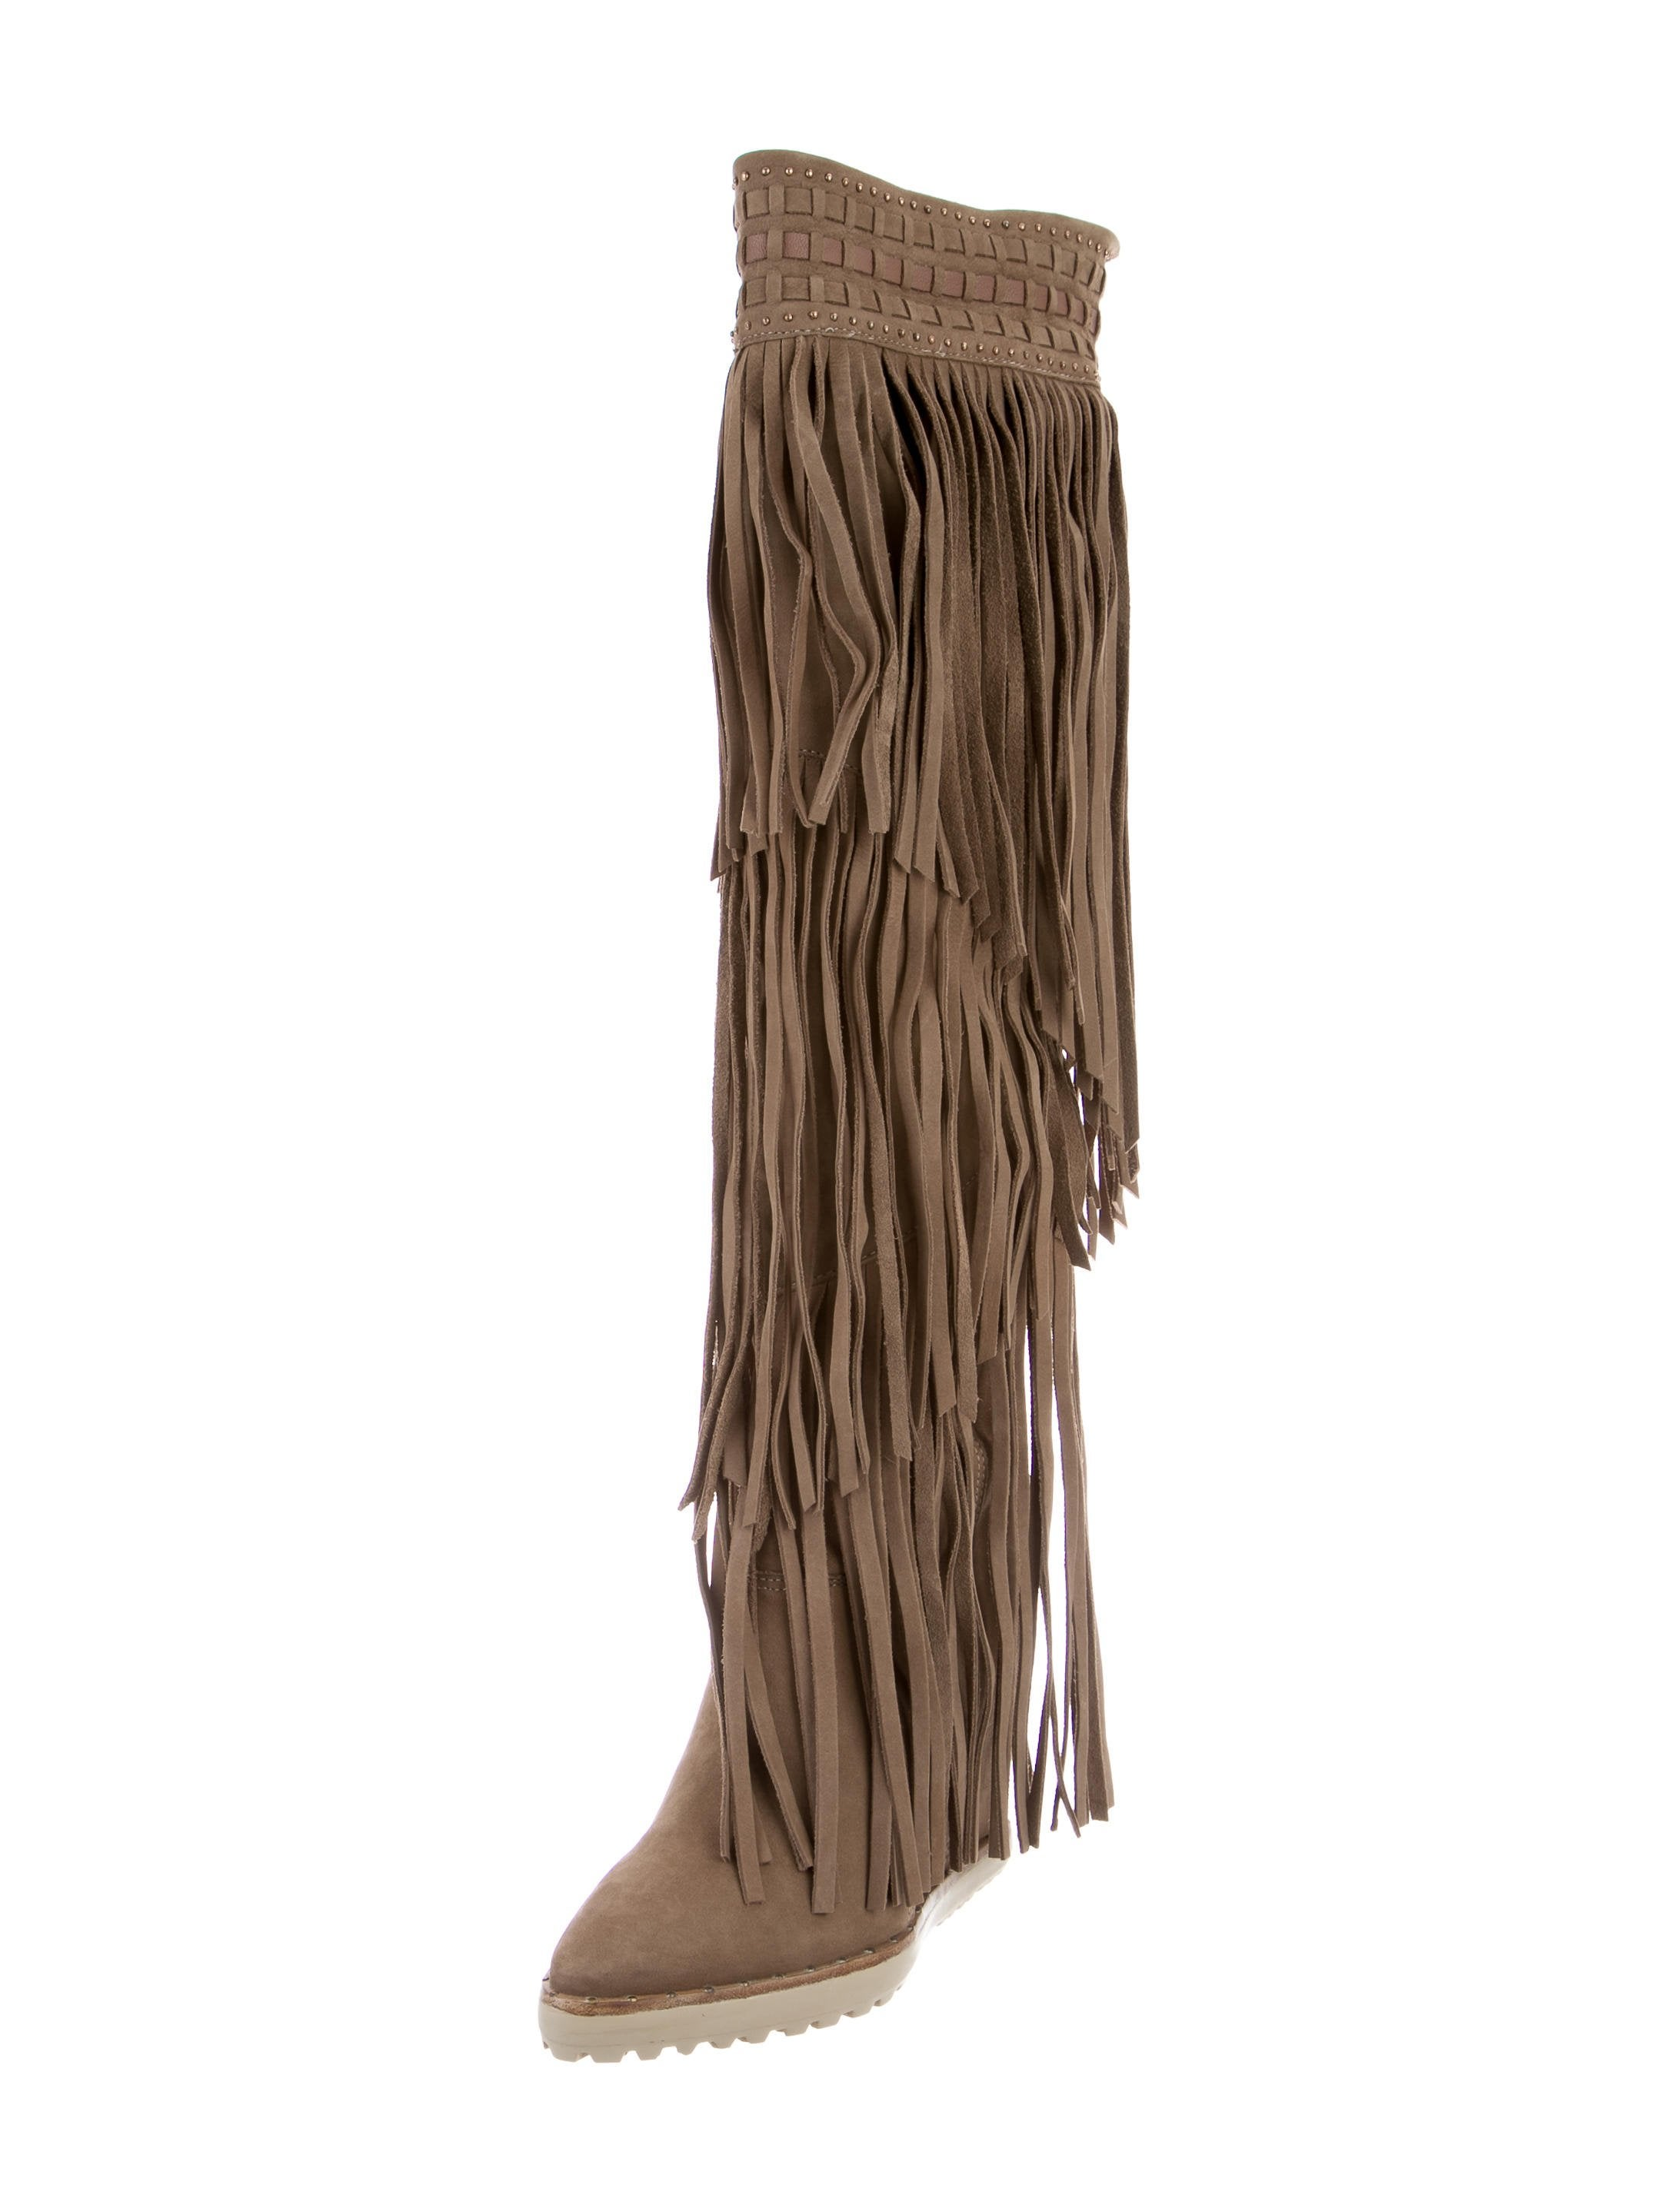 buy cheap factory outlet Ivy Kirzhner Suede Fringe Boots w/ Tags largest supplier cost cheap price clearance from china OfWkjiQIj